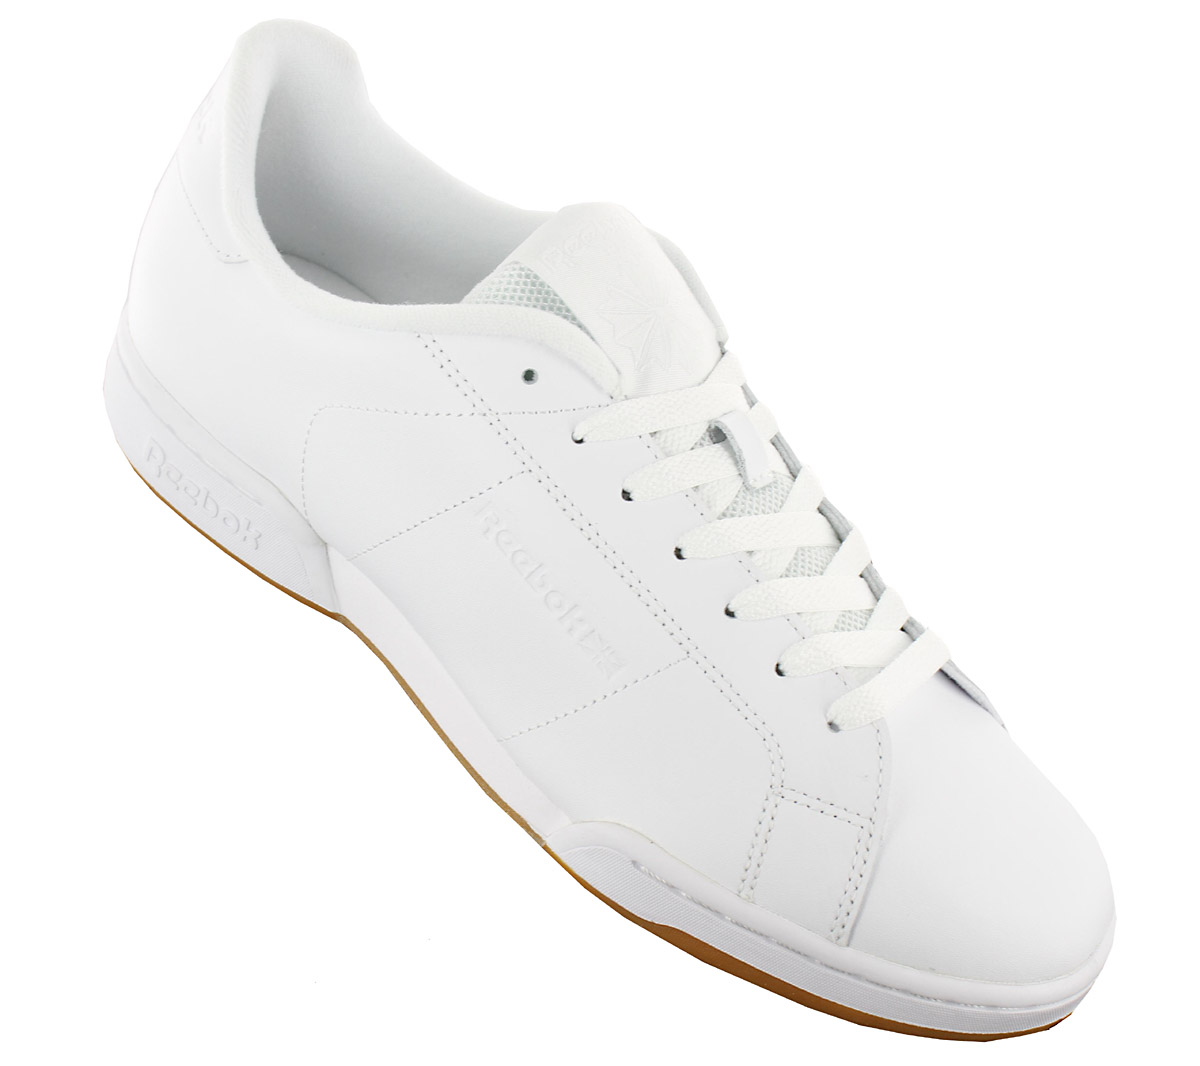 58e527917d9 Reebok Classic Npc II TG Mens Sneakers Leather Shoes White Workout ...